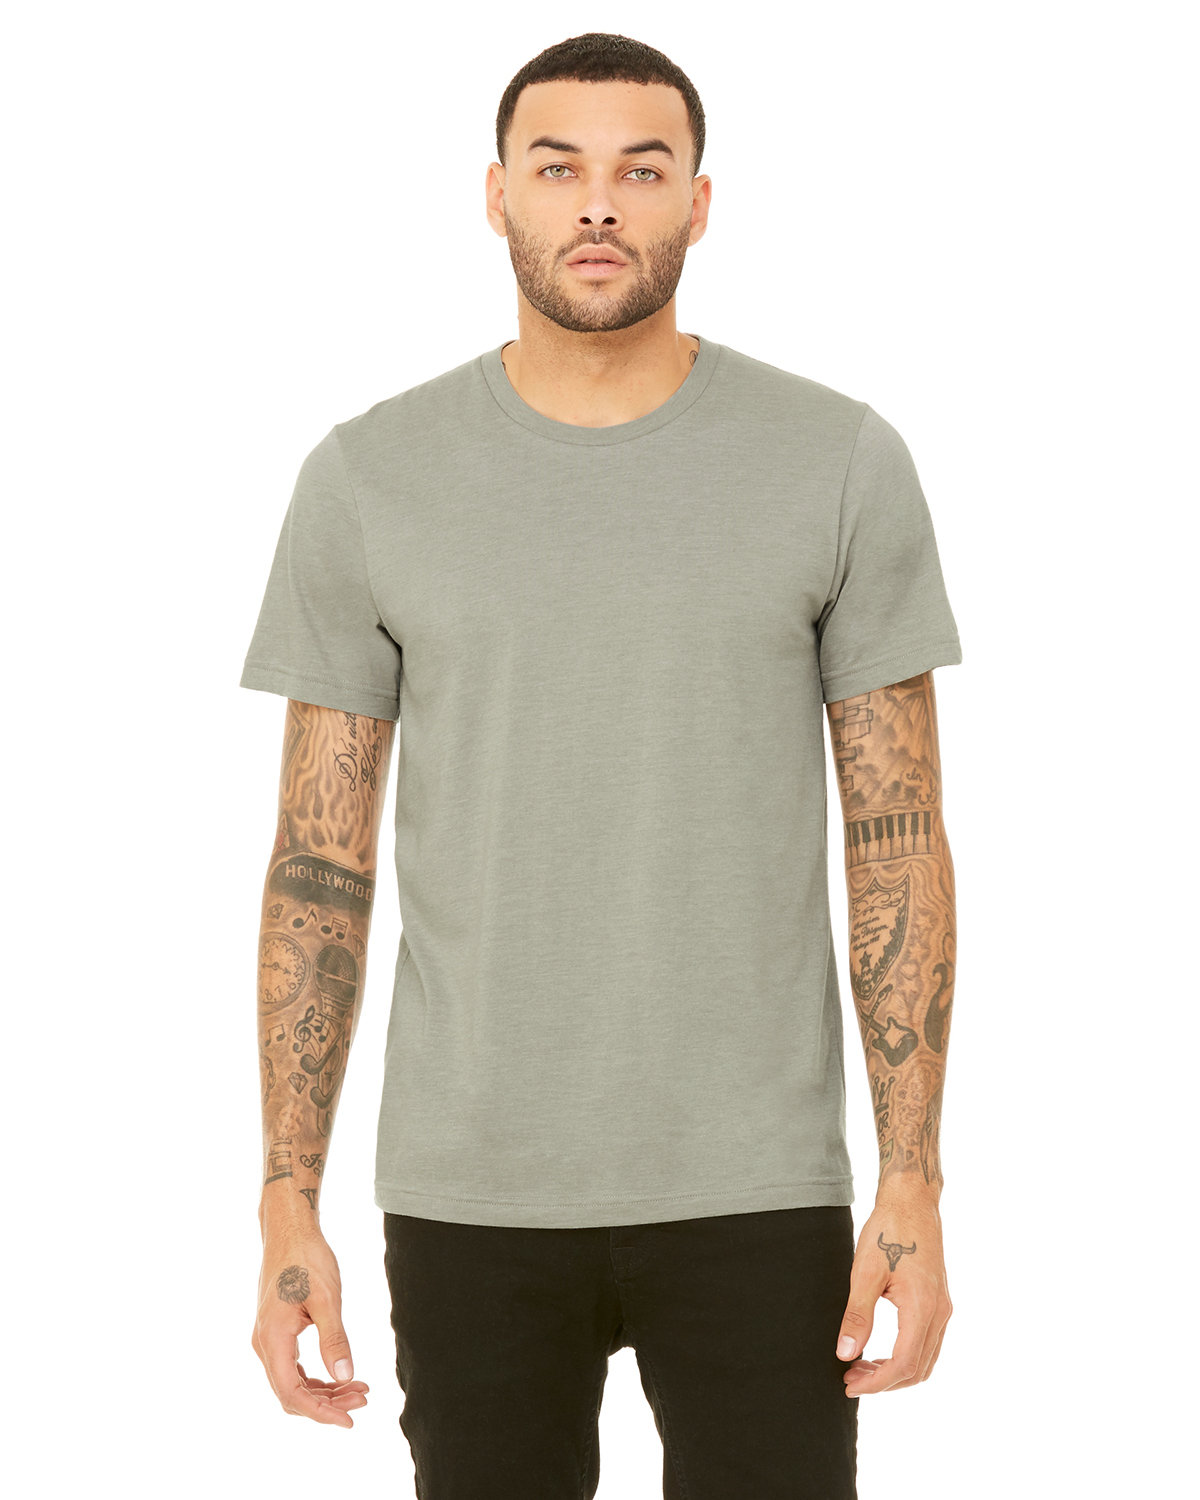 Bella + Canvas Unisex Heather CVC T-Shirt HEATHER STONE